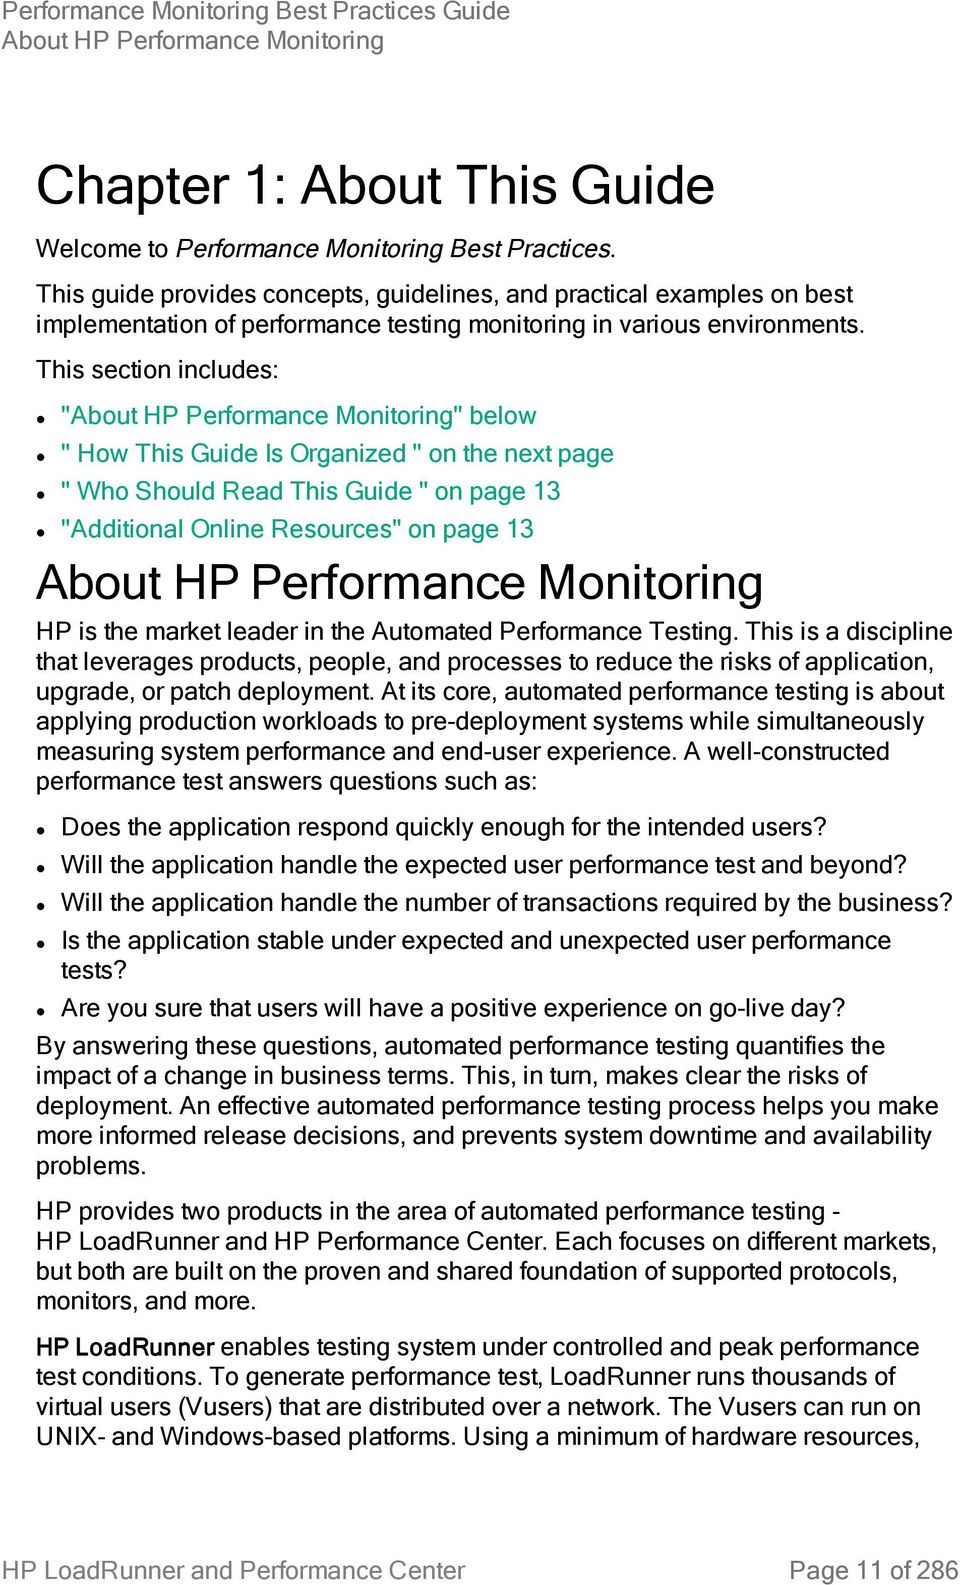 HP LoadRunner and Performance Center  Performance Monitoring